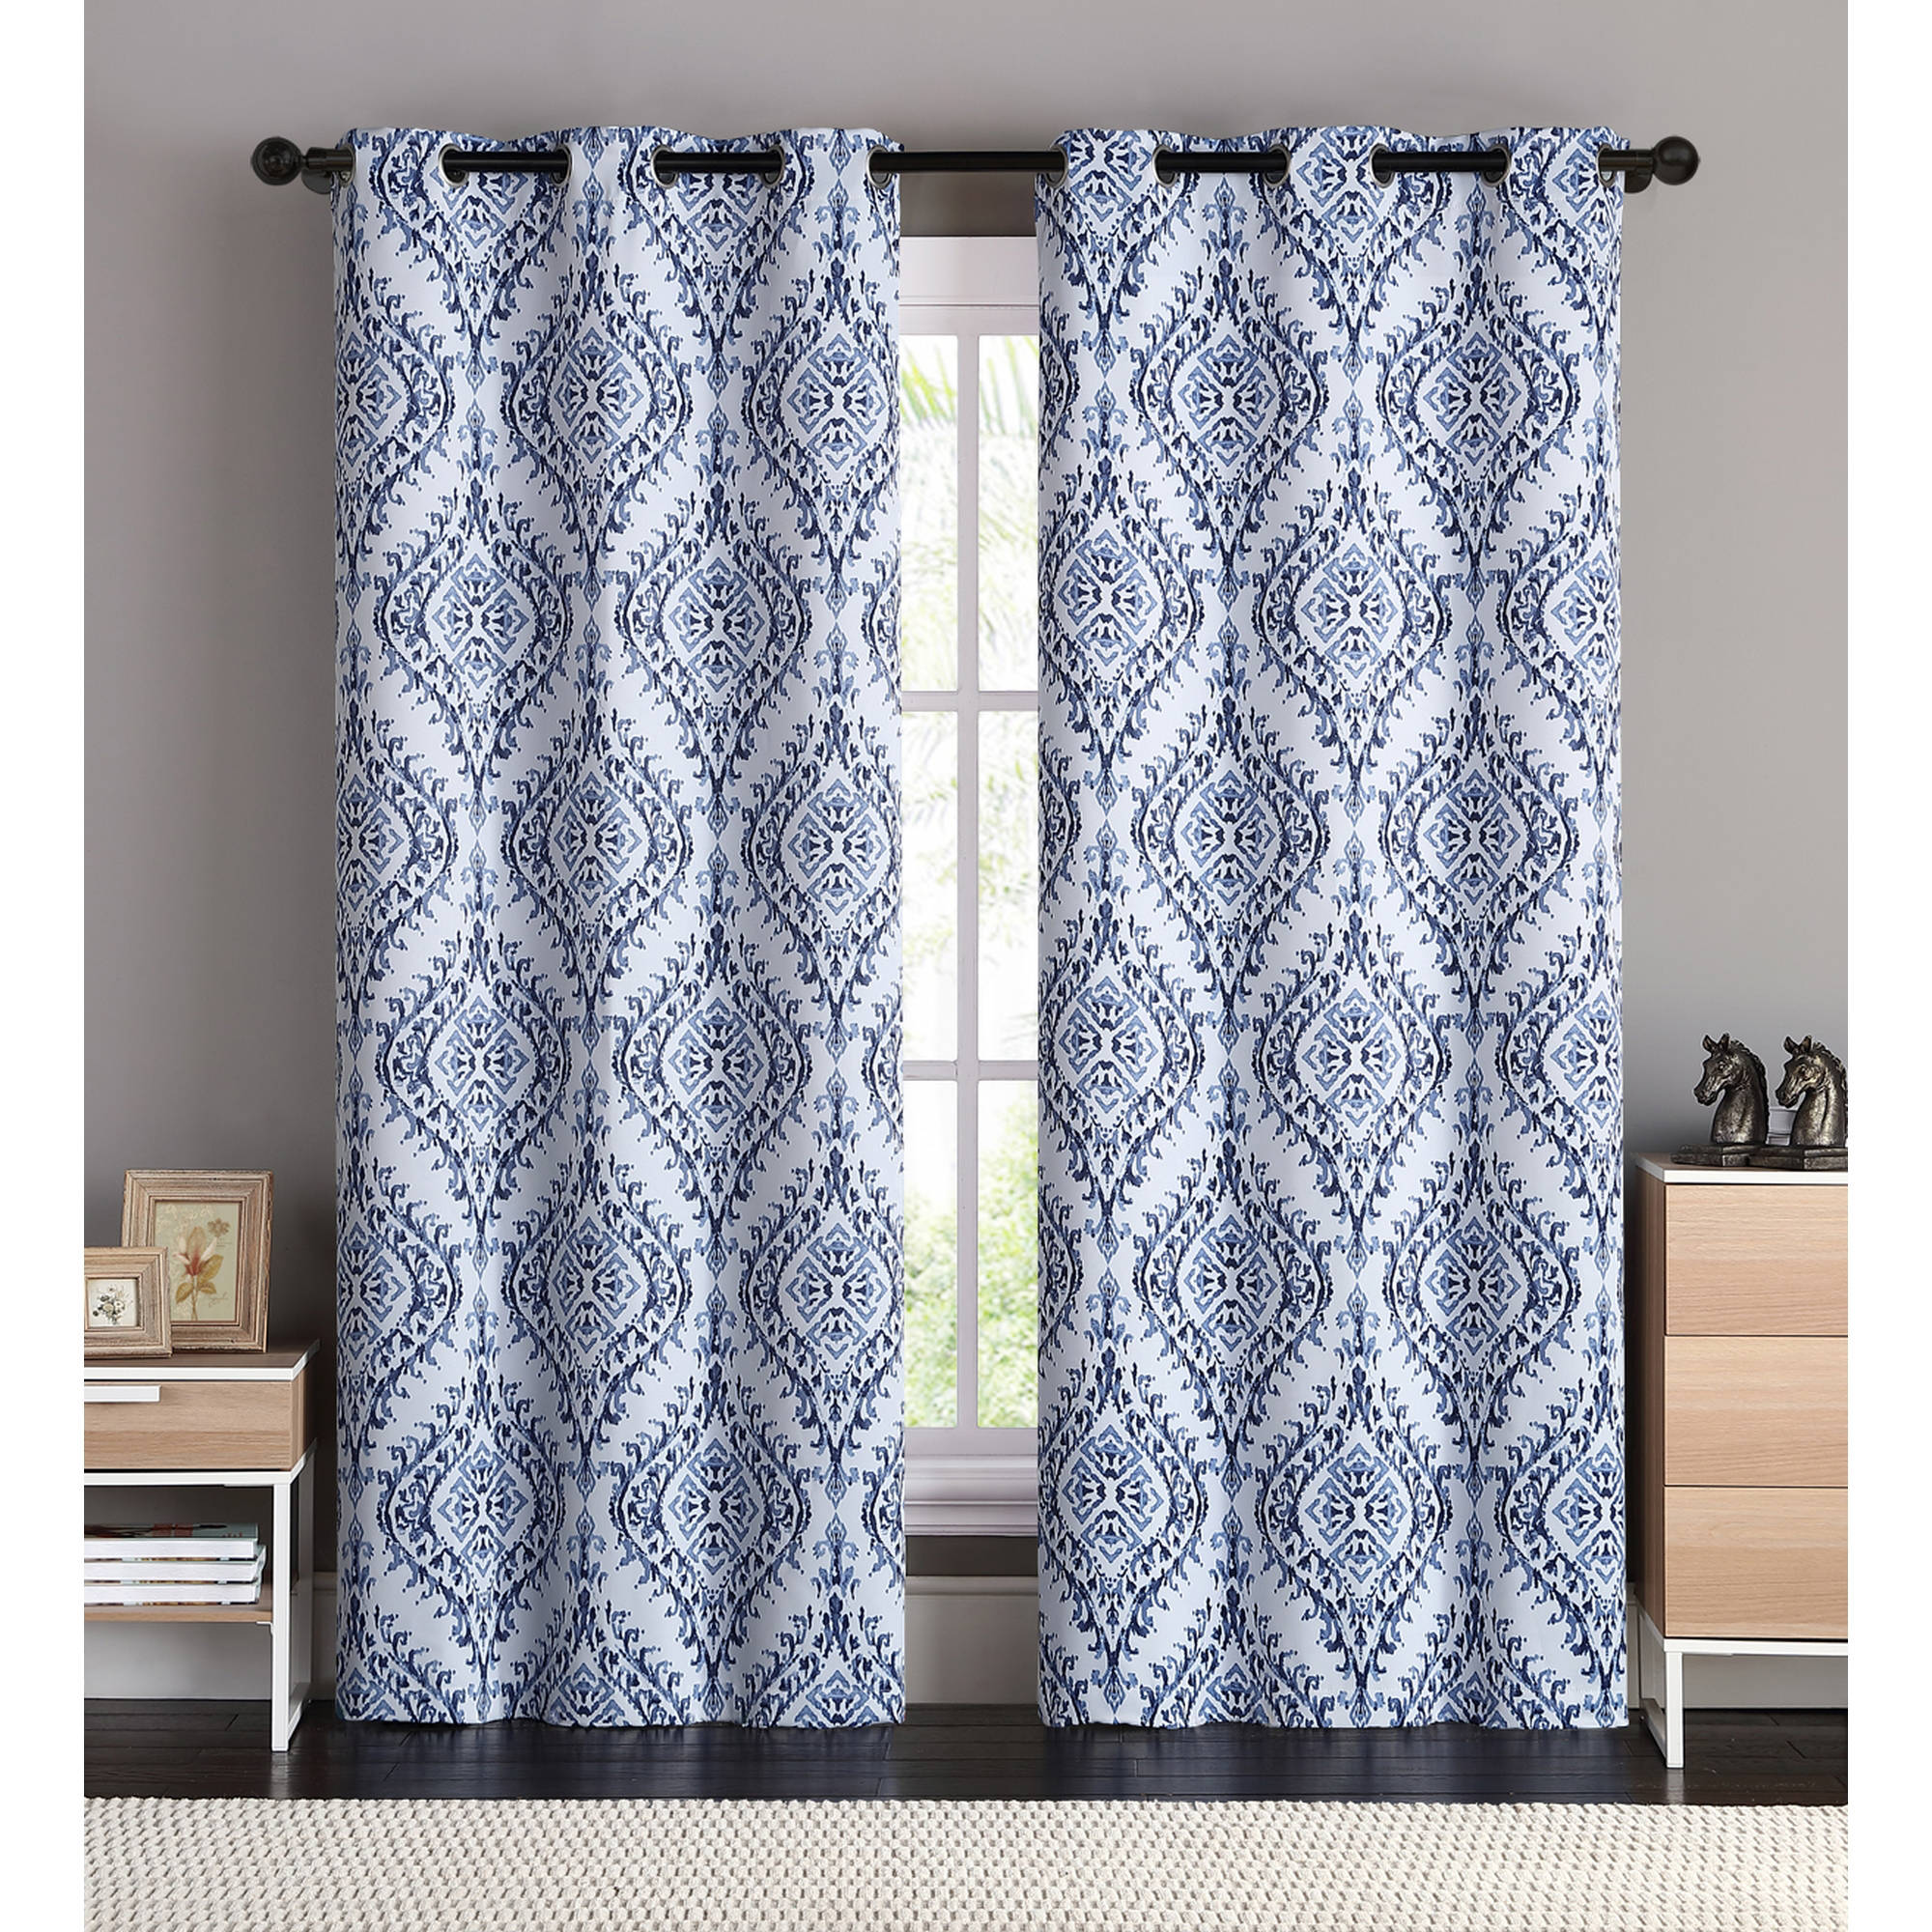 ***DISCONTINUED*** VCNY Home London Damask Printed Blackout Grommet Top Window Curtain Panel - Set of Two, Multiple Sizes and Colors Available